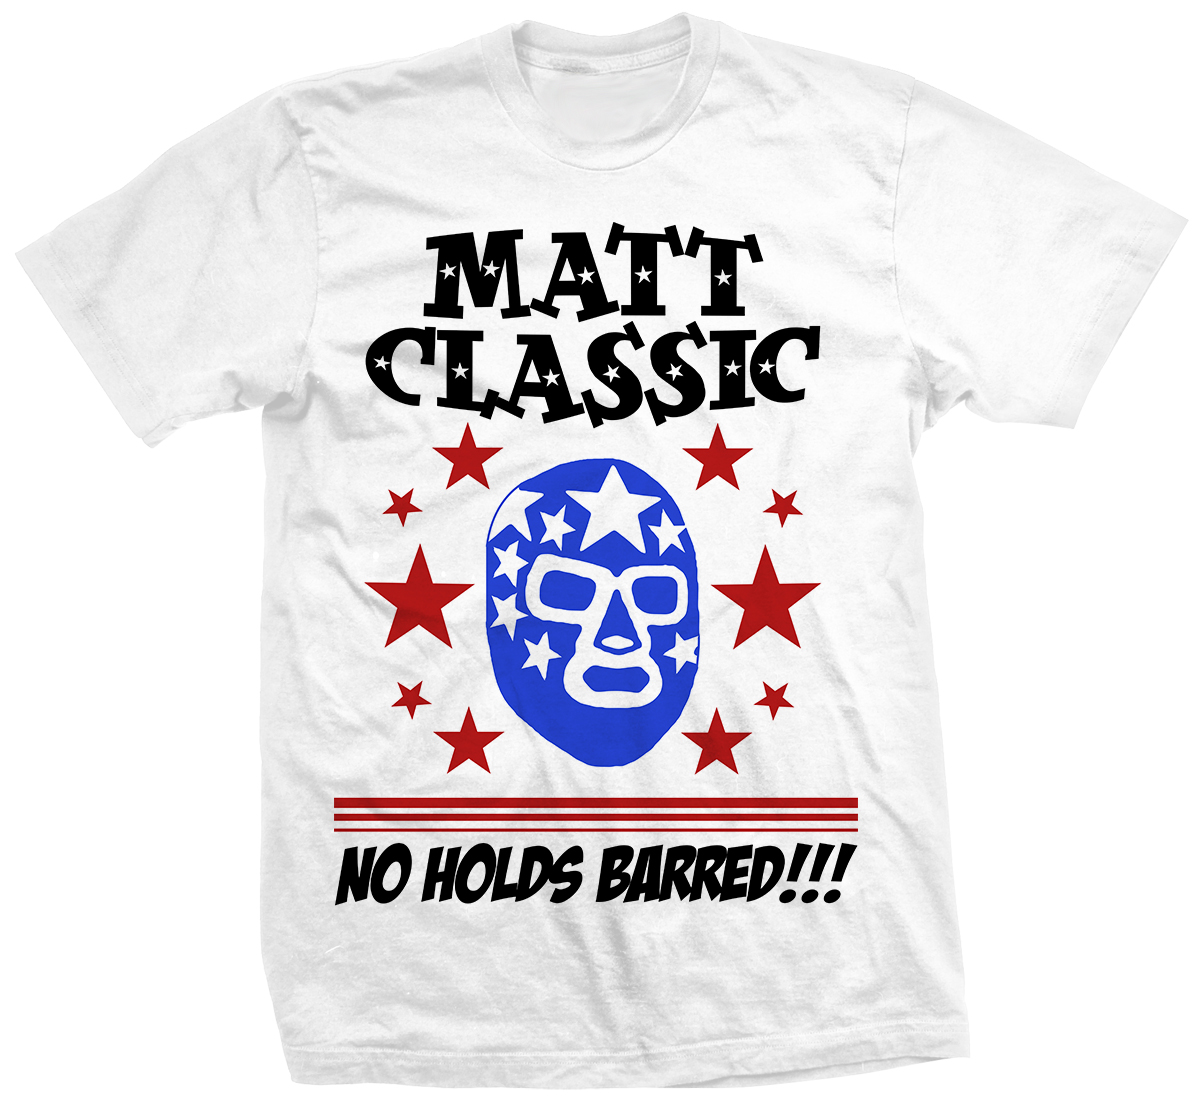 Matt Classic No Holds Barred T-shirt